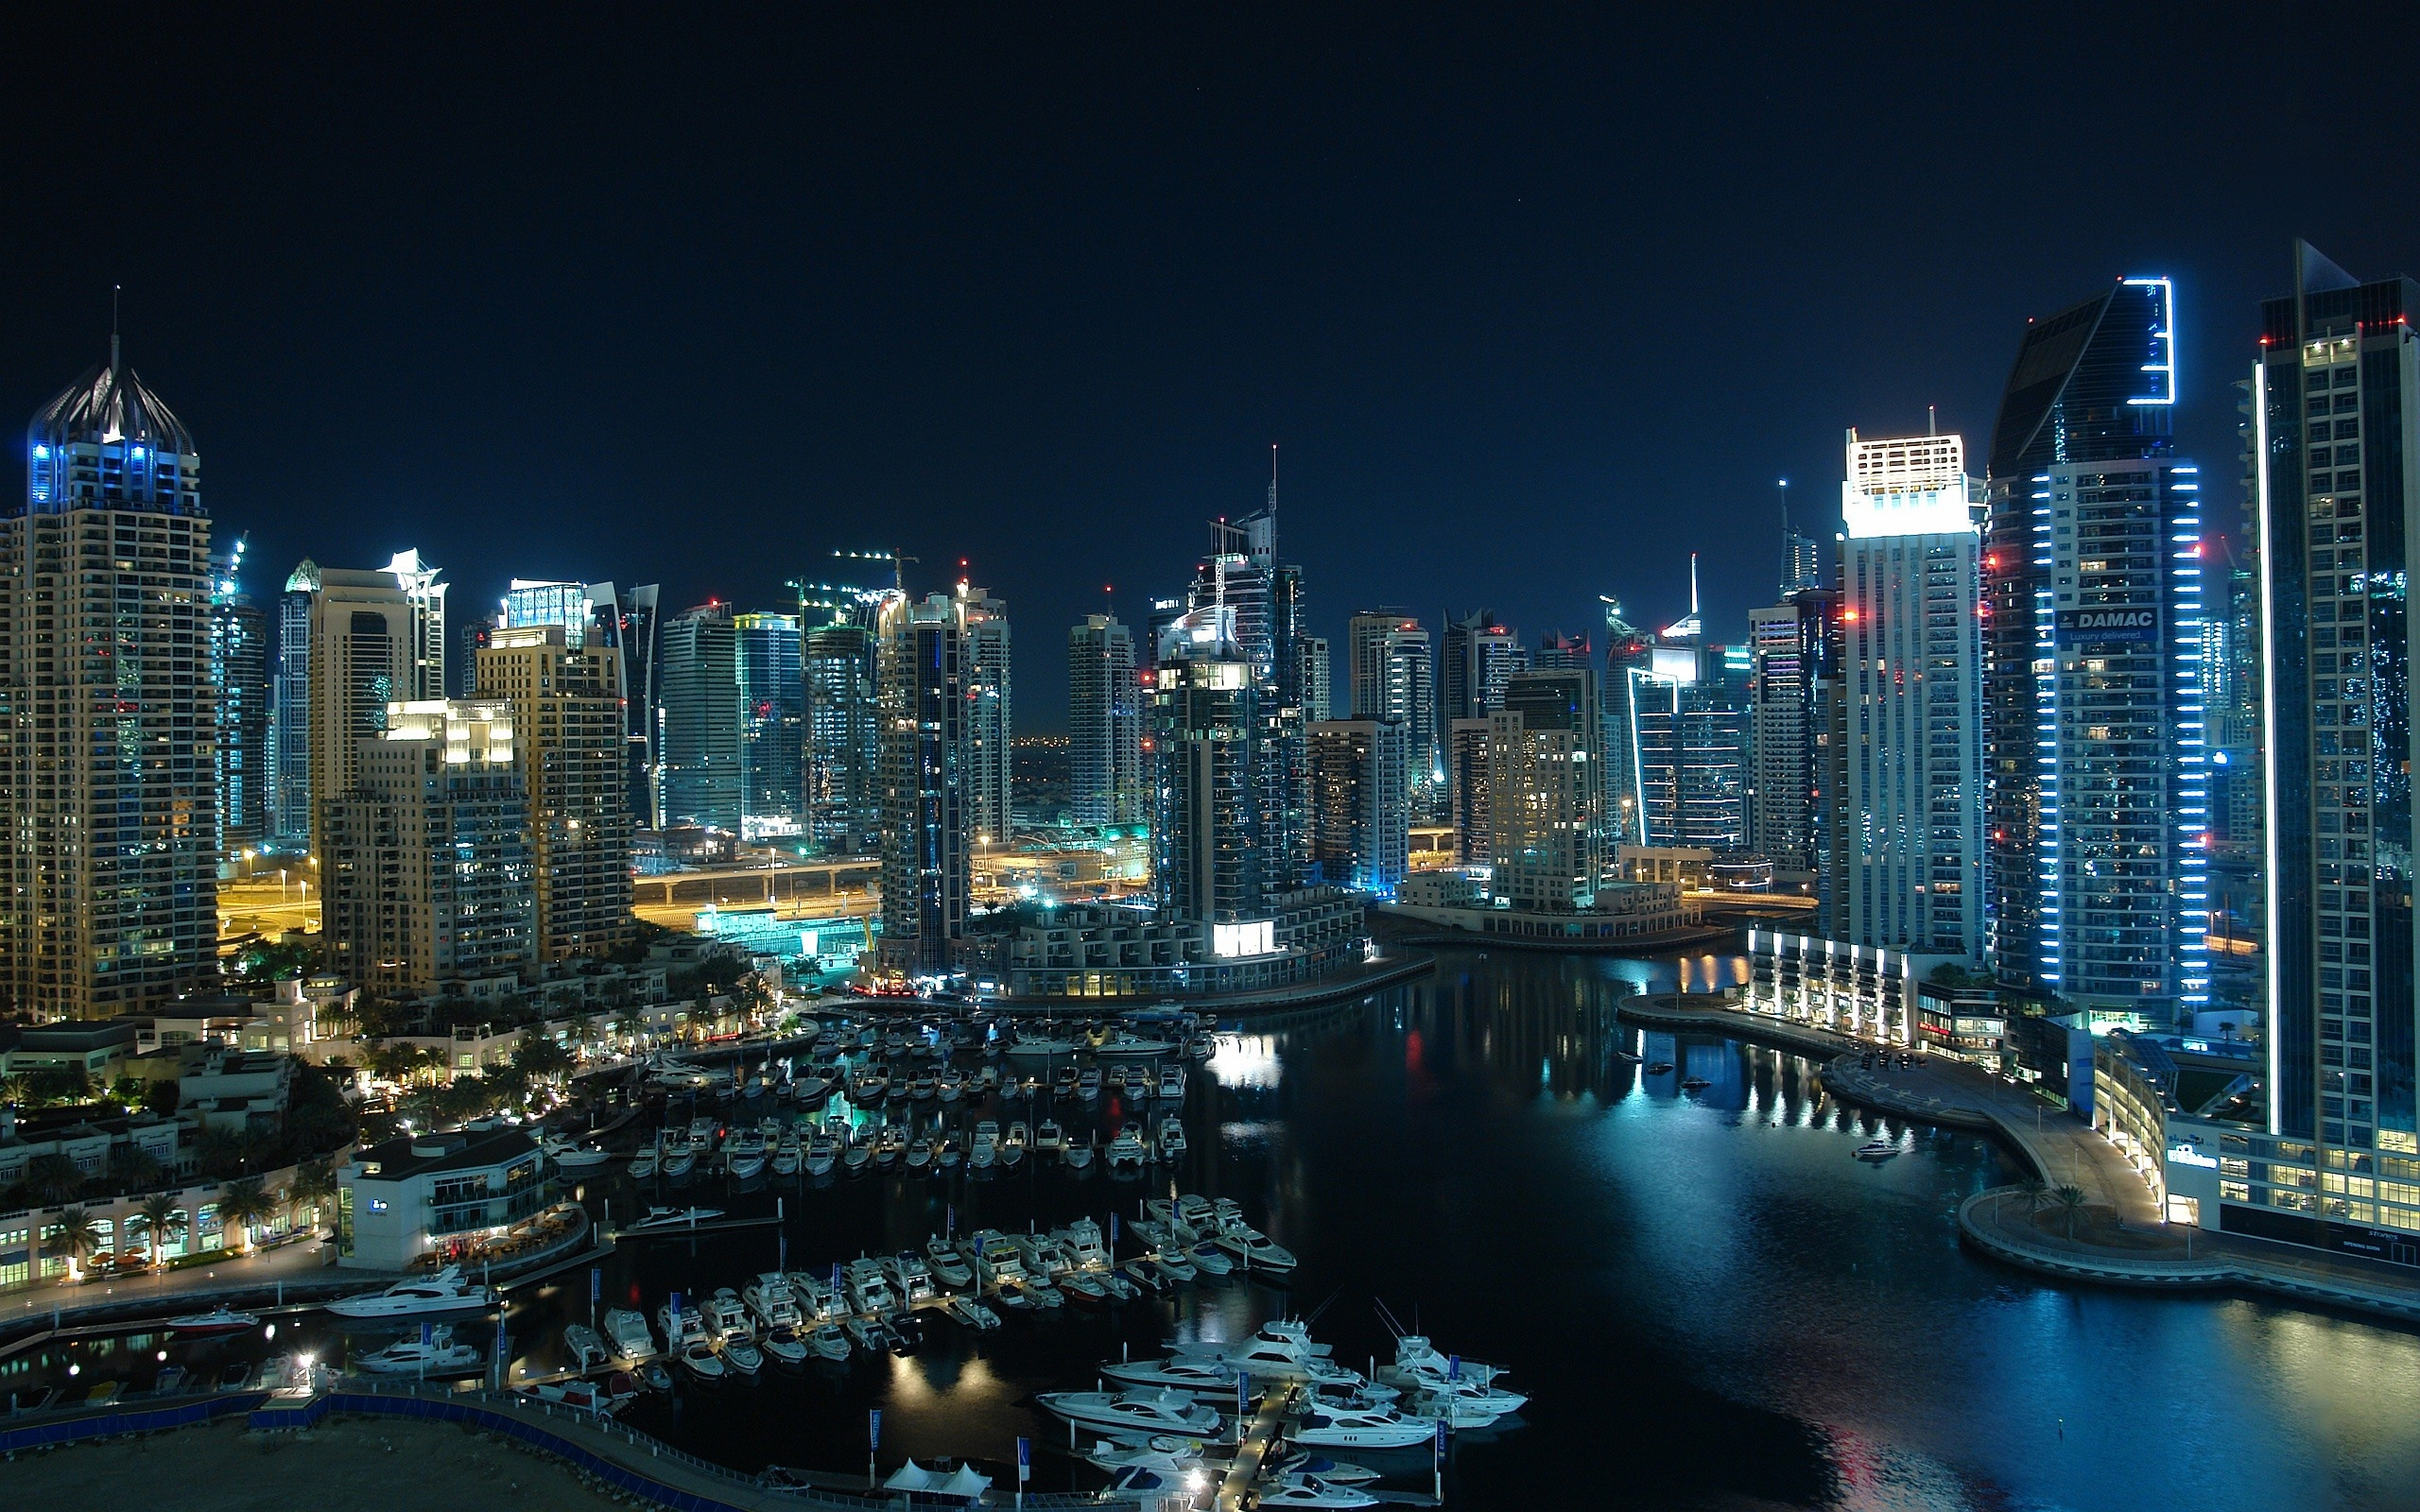 City Dubai Wallpapers 2560x1600 #3785 Wallpaper